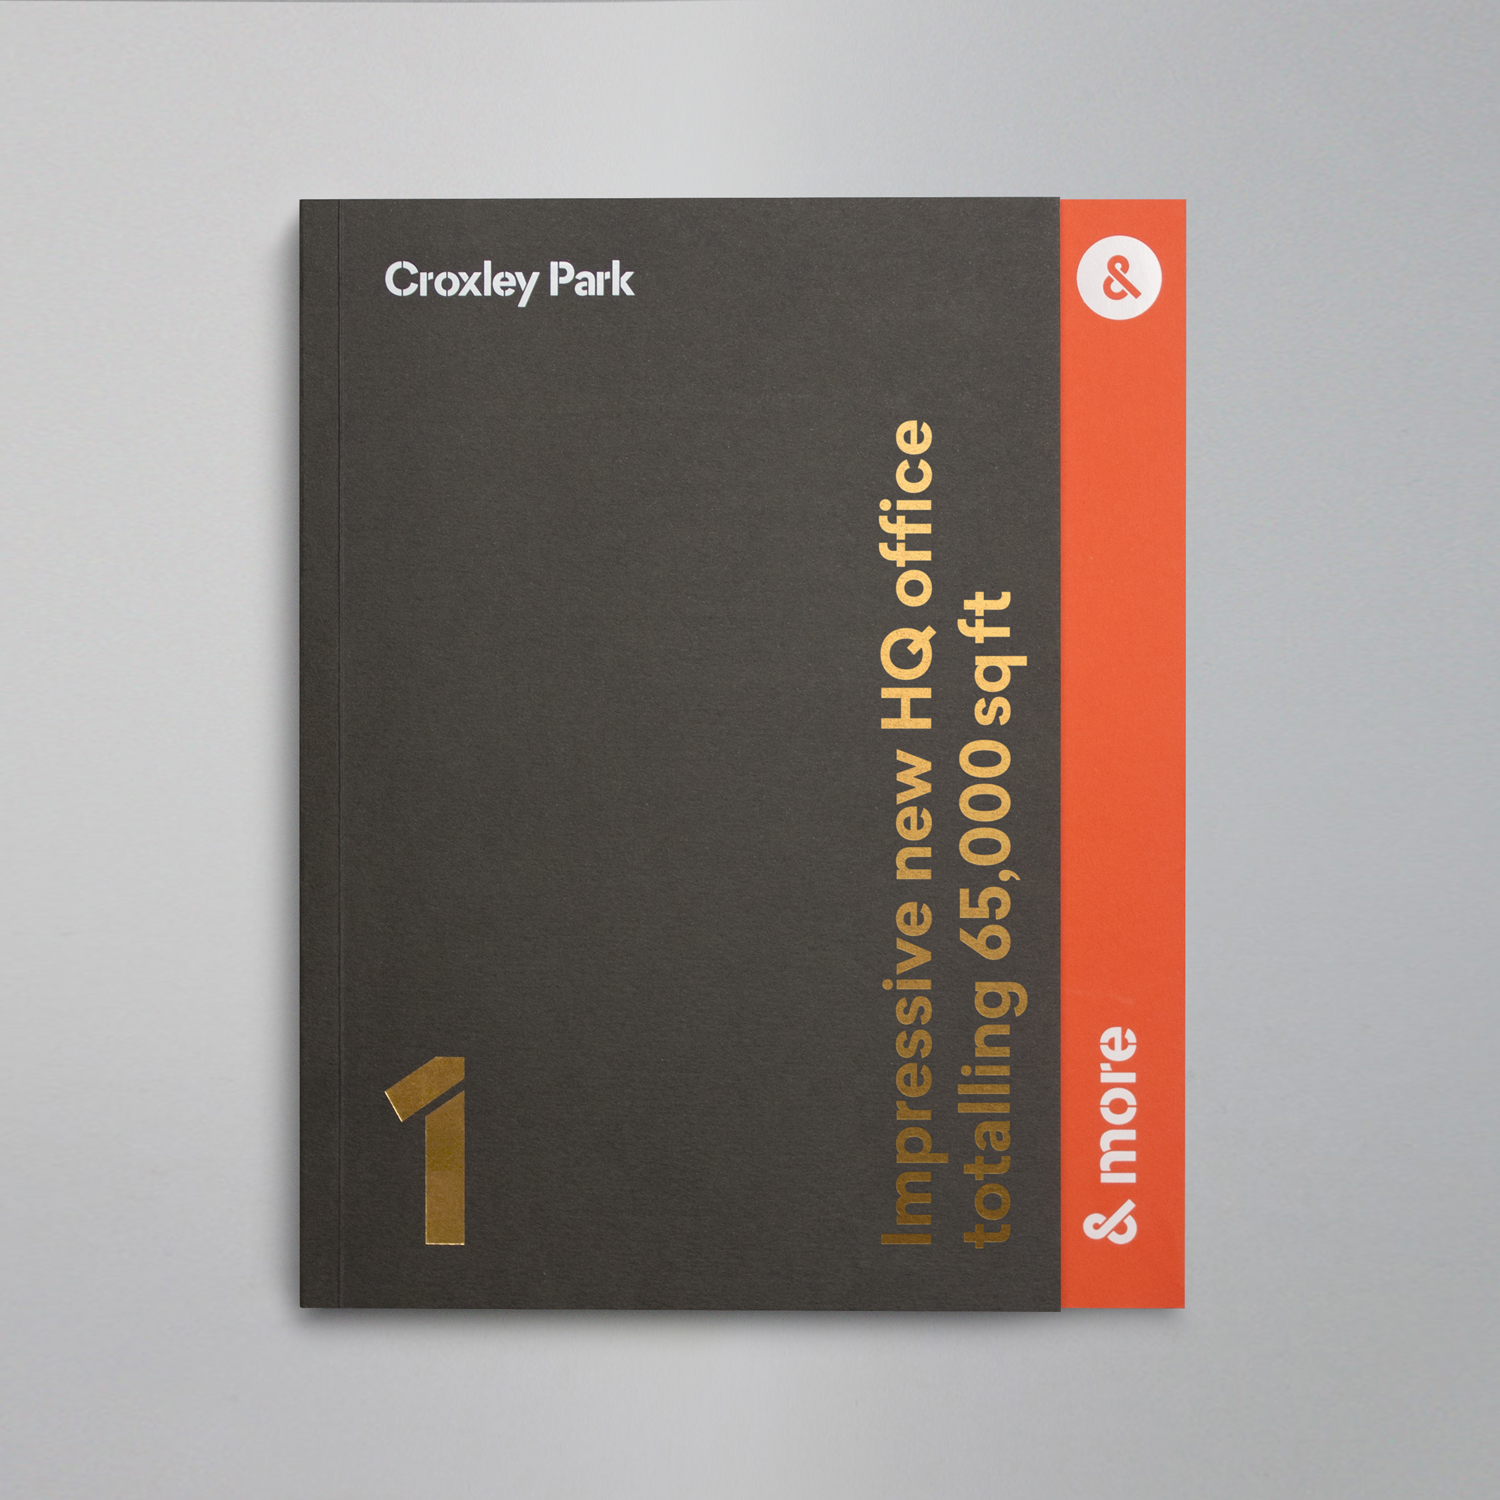 Brand identity and brochure with uncoated paper and block foil print finish by Blast for UK business park Croxley Park